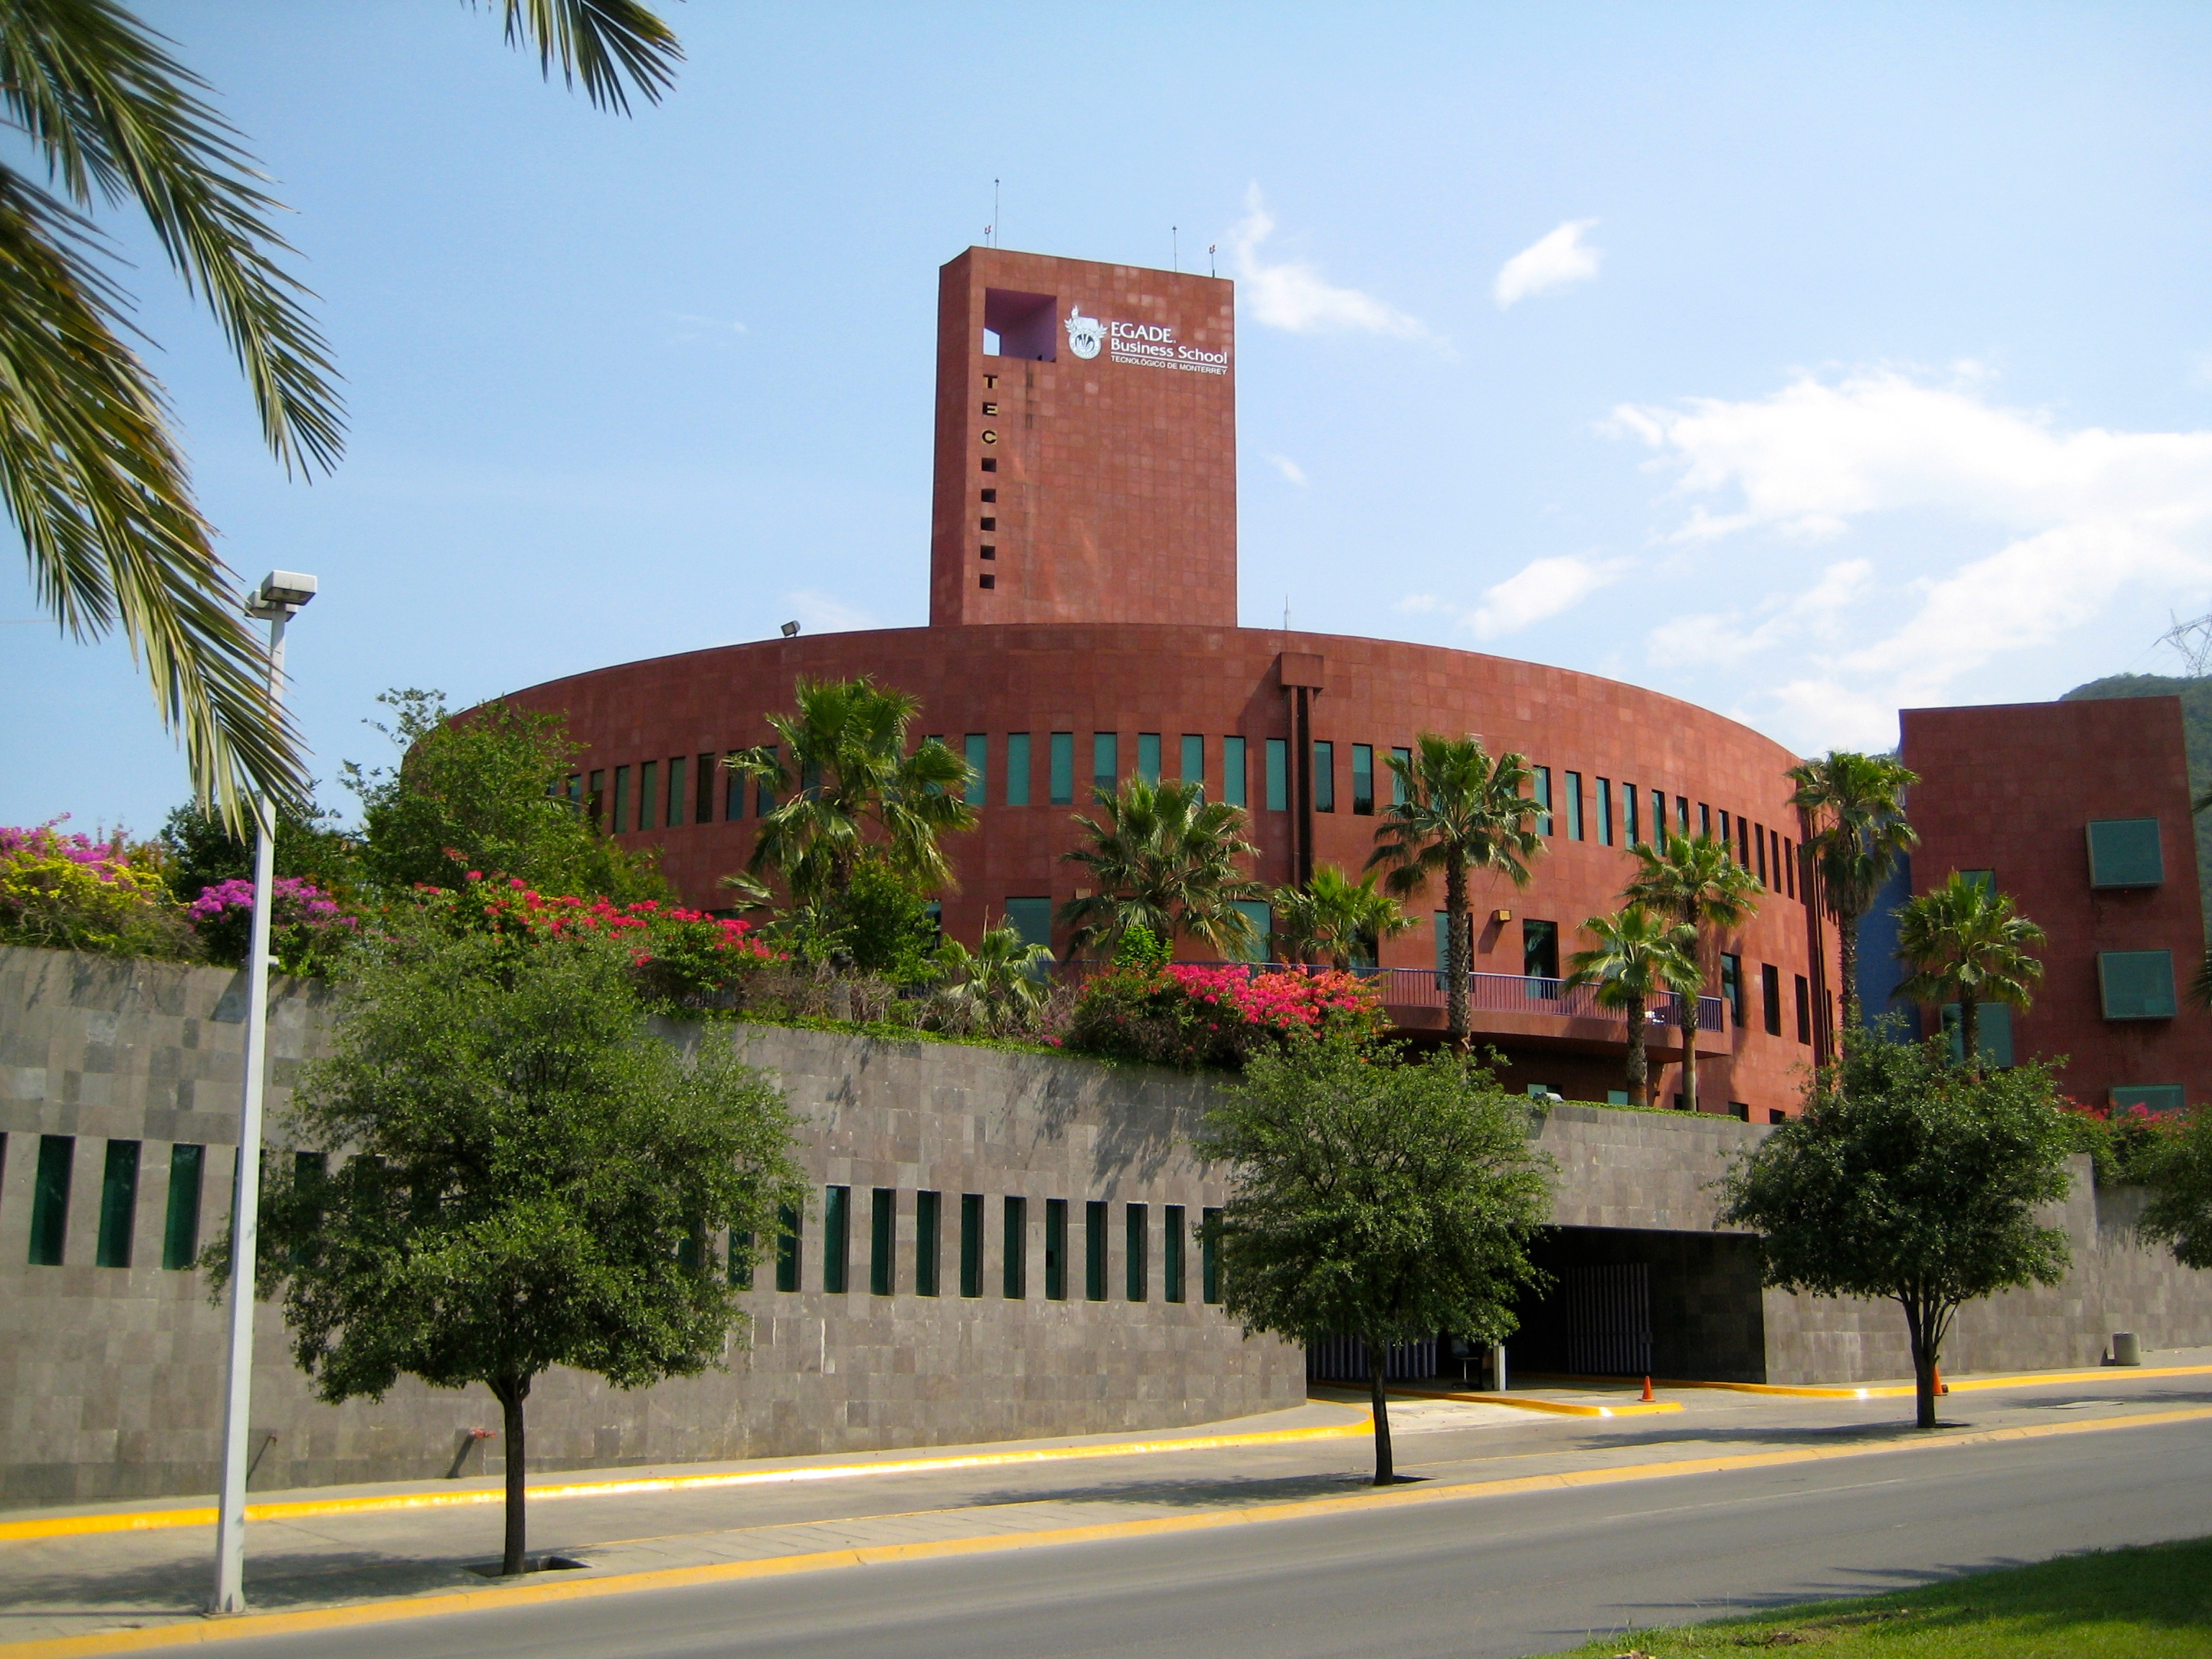 B%2fb5%2fegade business school at monterrey from rufino tamayo park